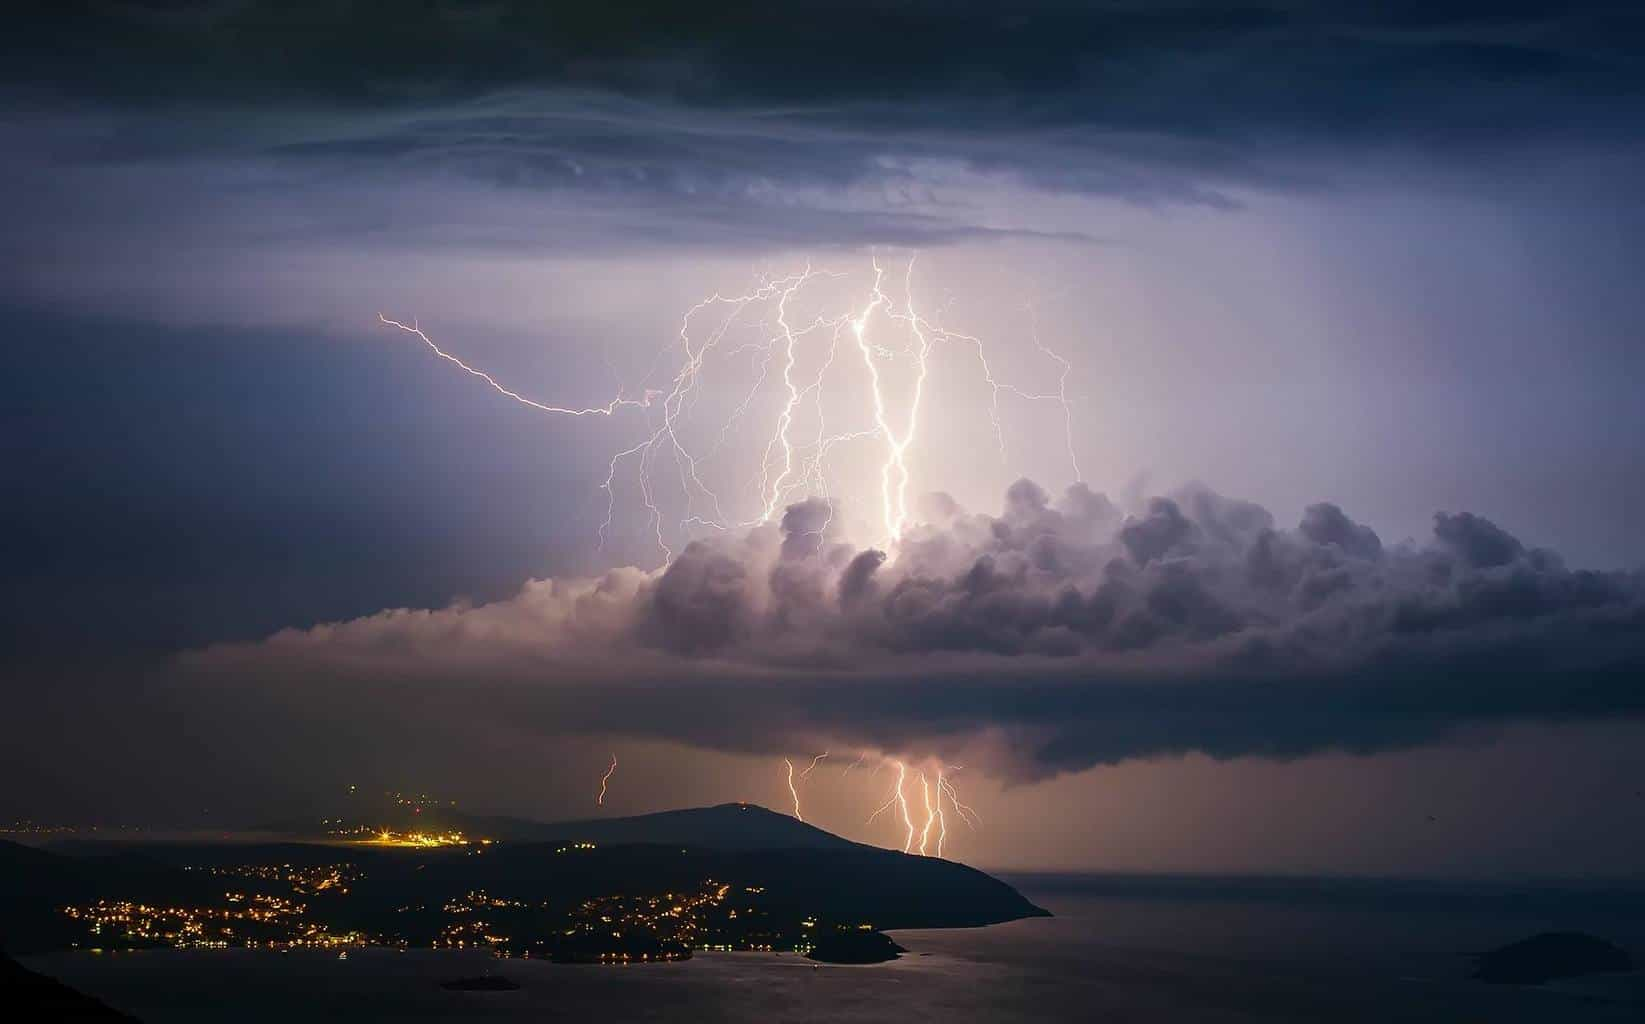 storm ariving on Cavtat /Croatia....autumn 2014.